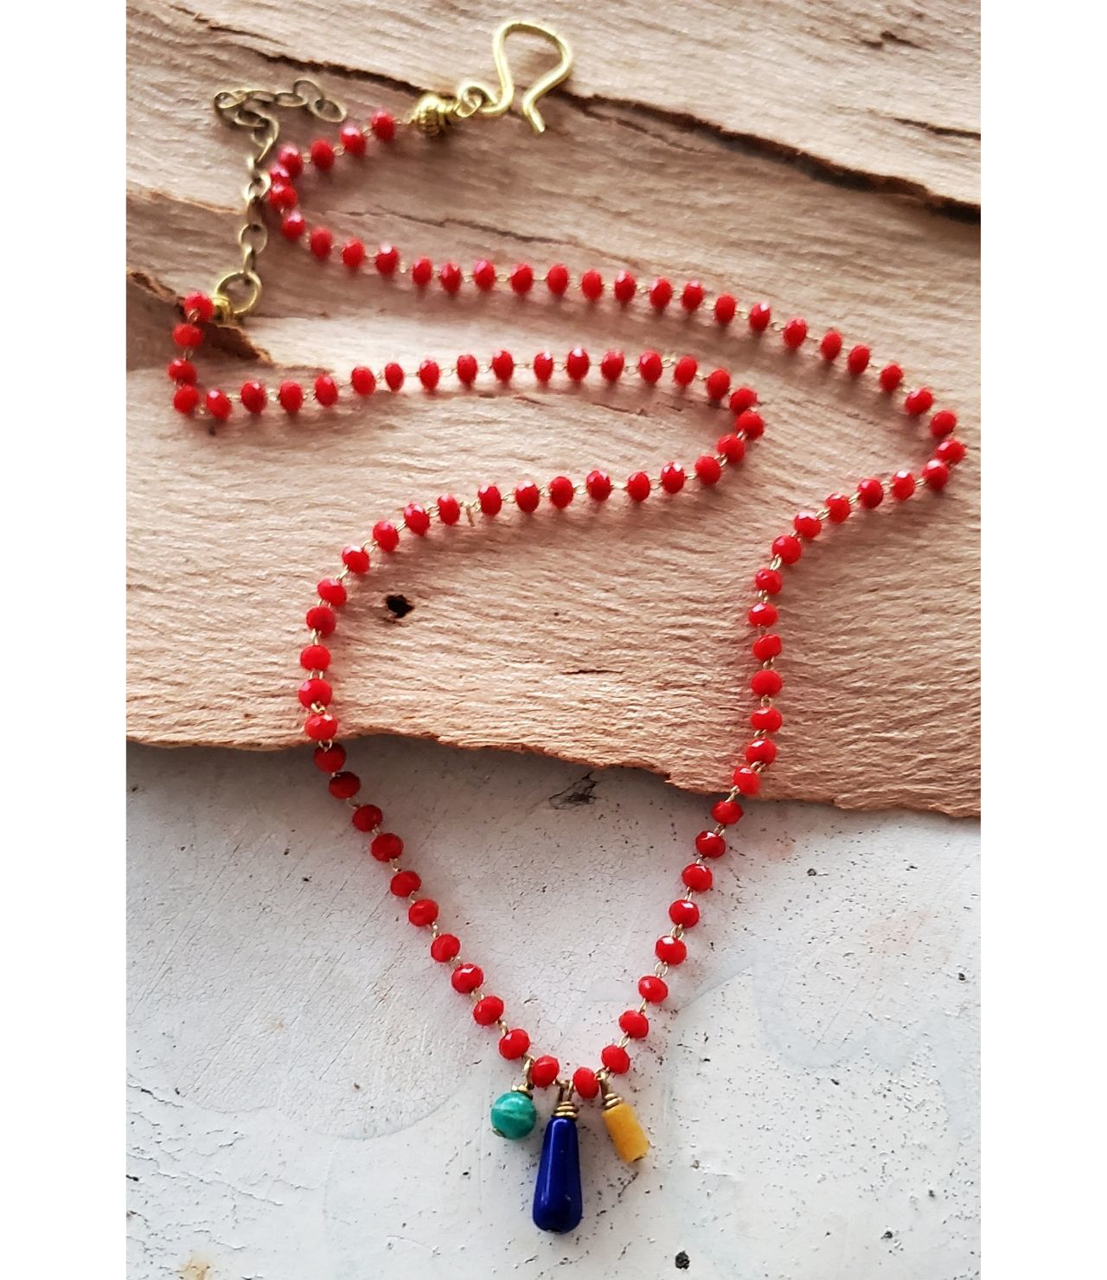 Bright gemstone dainty necklace on wood with red, blue, green, yellow stones